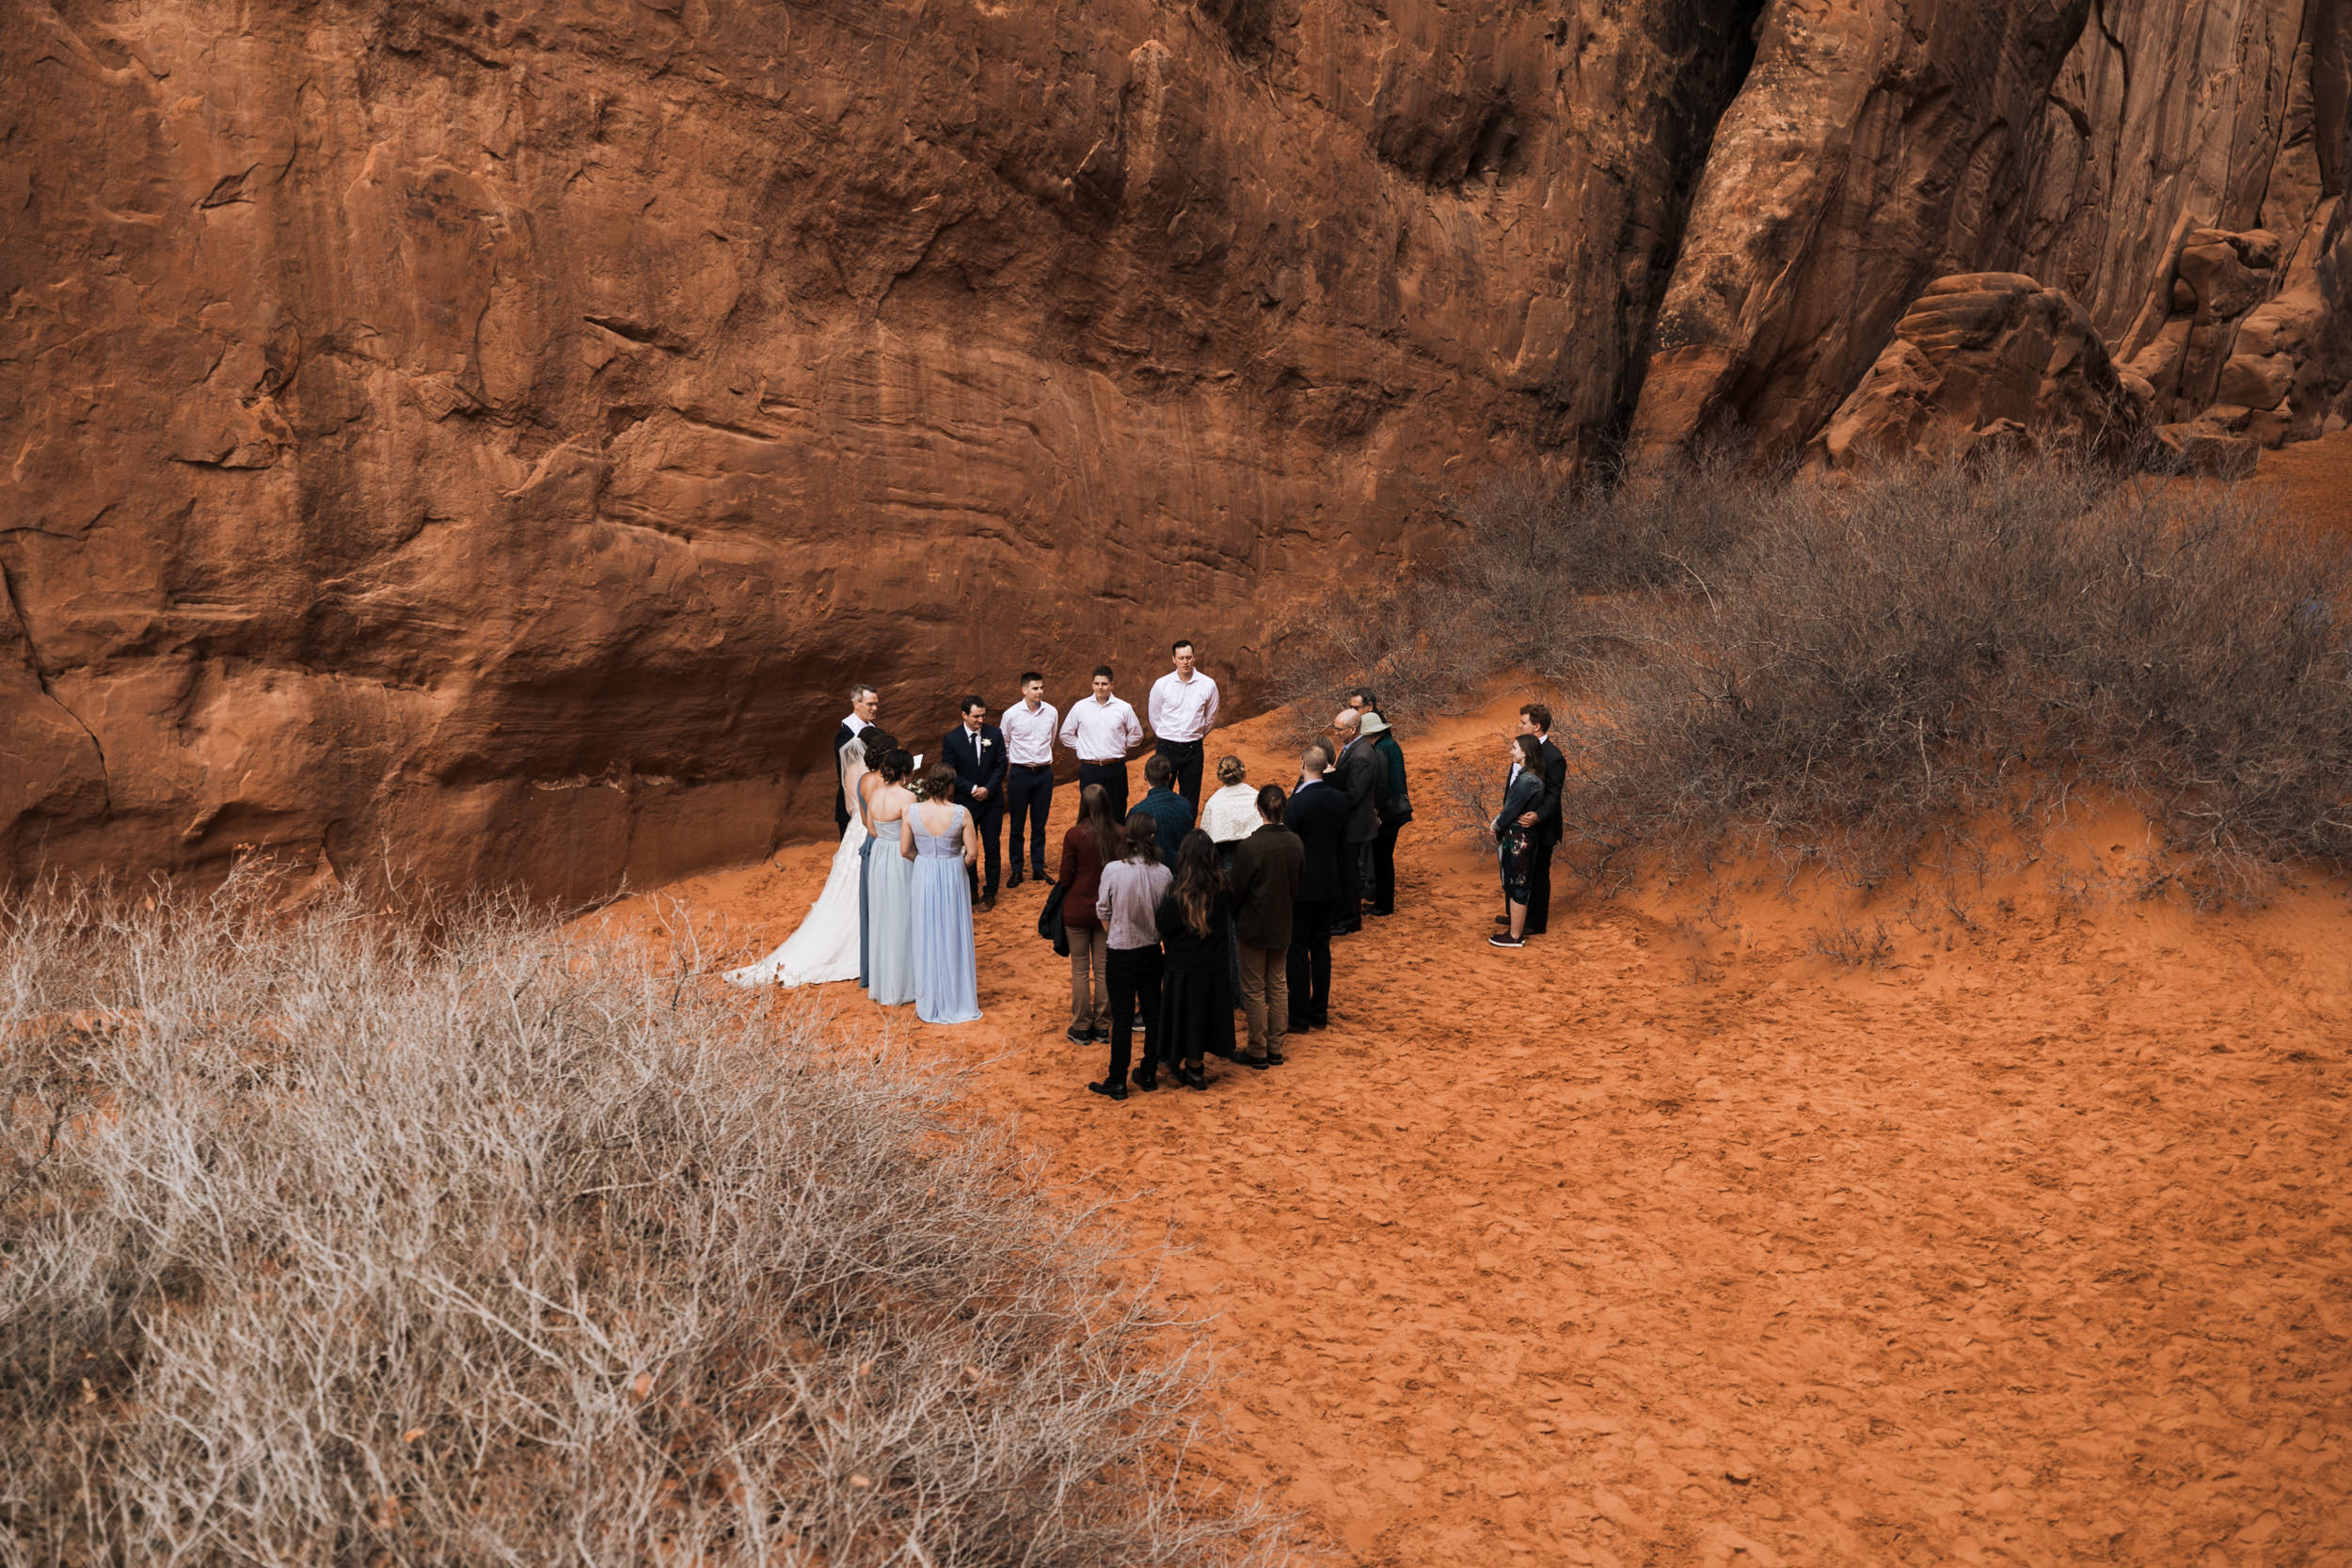 Arches National Park has some beautiful designated wedding ceremony locations. Just make sure to get your permit!